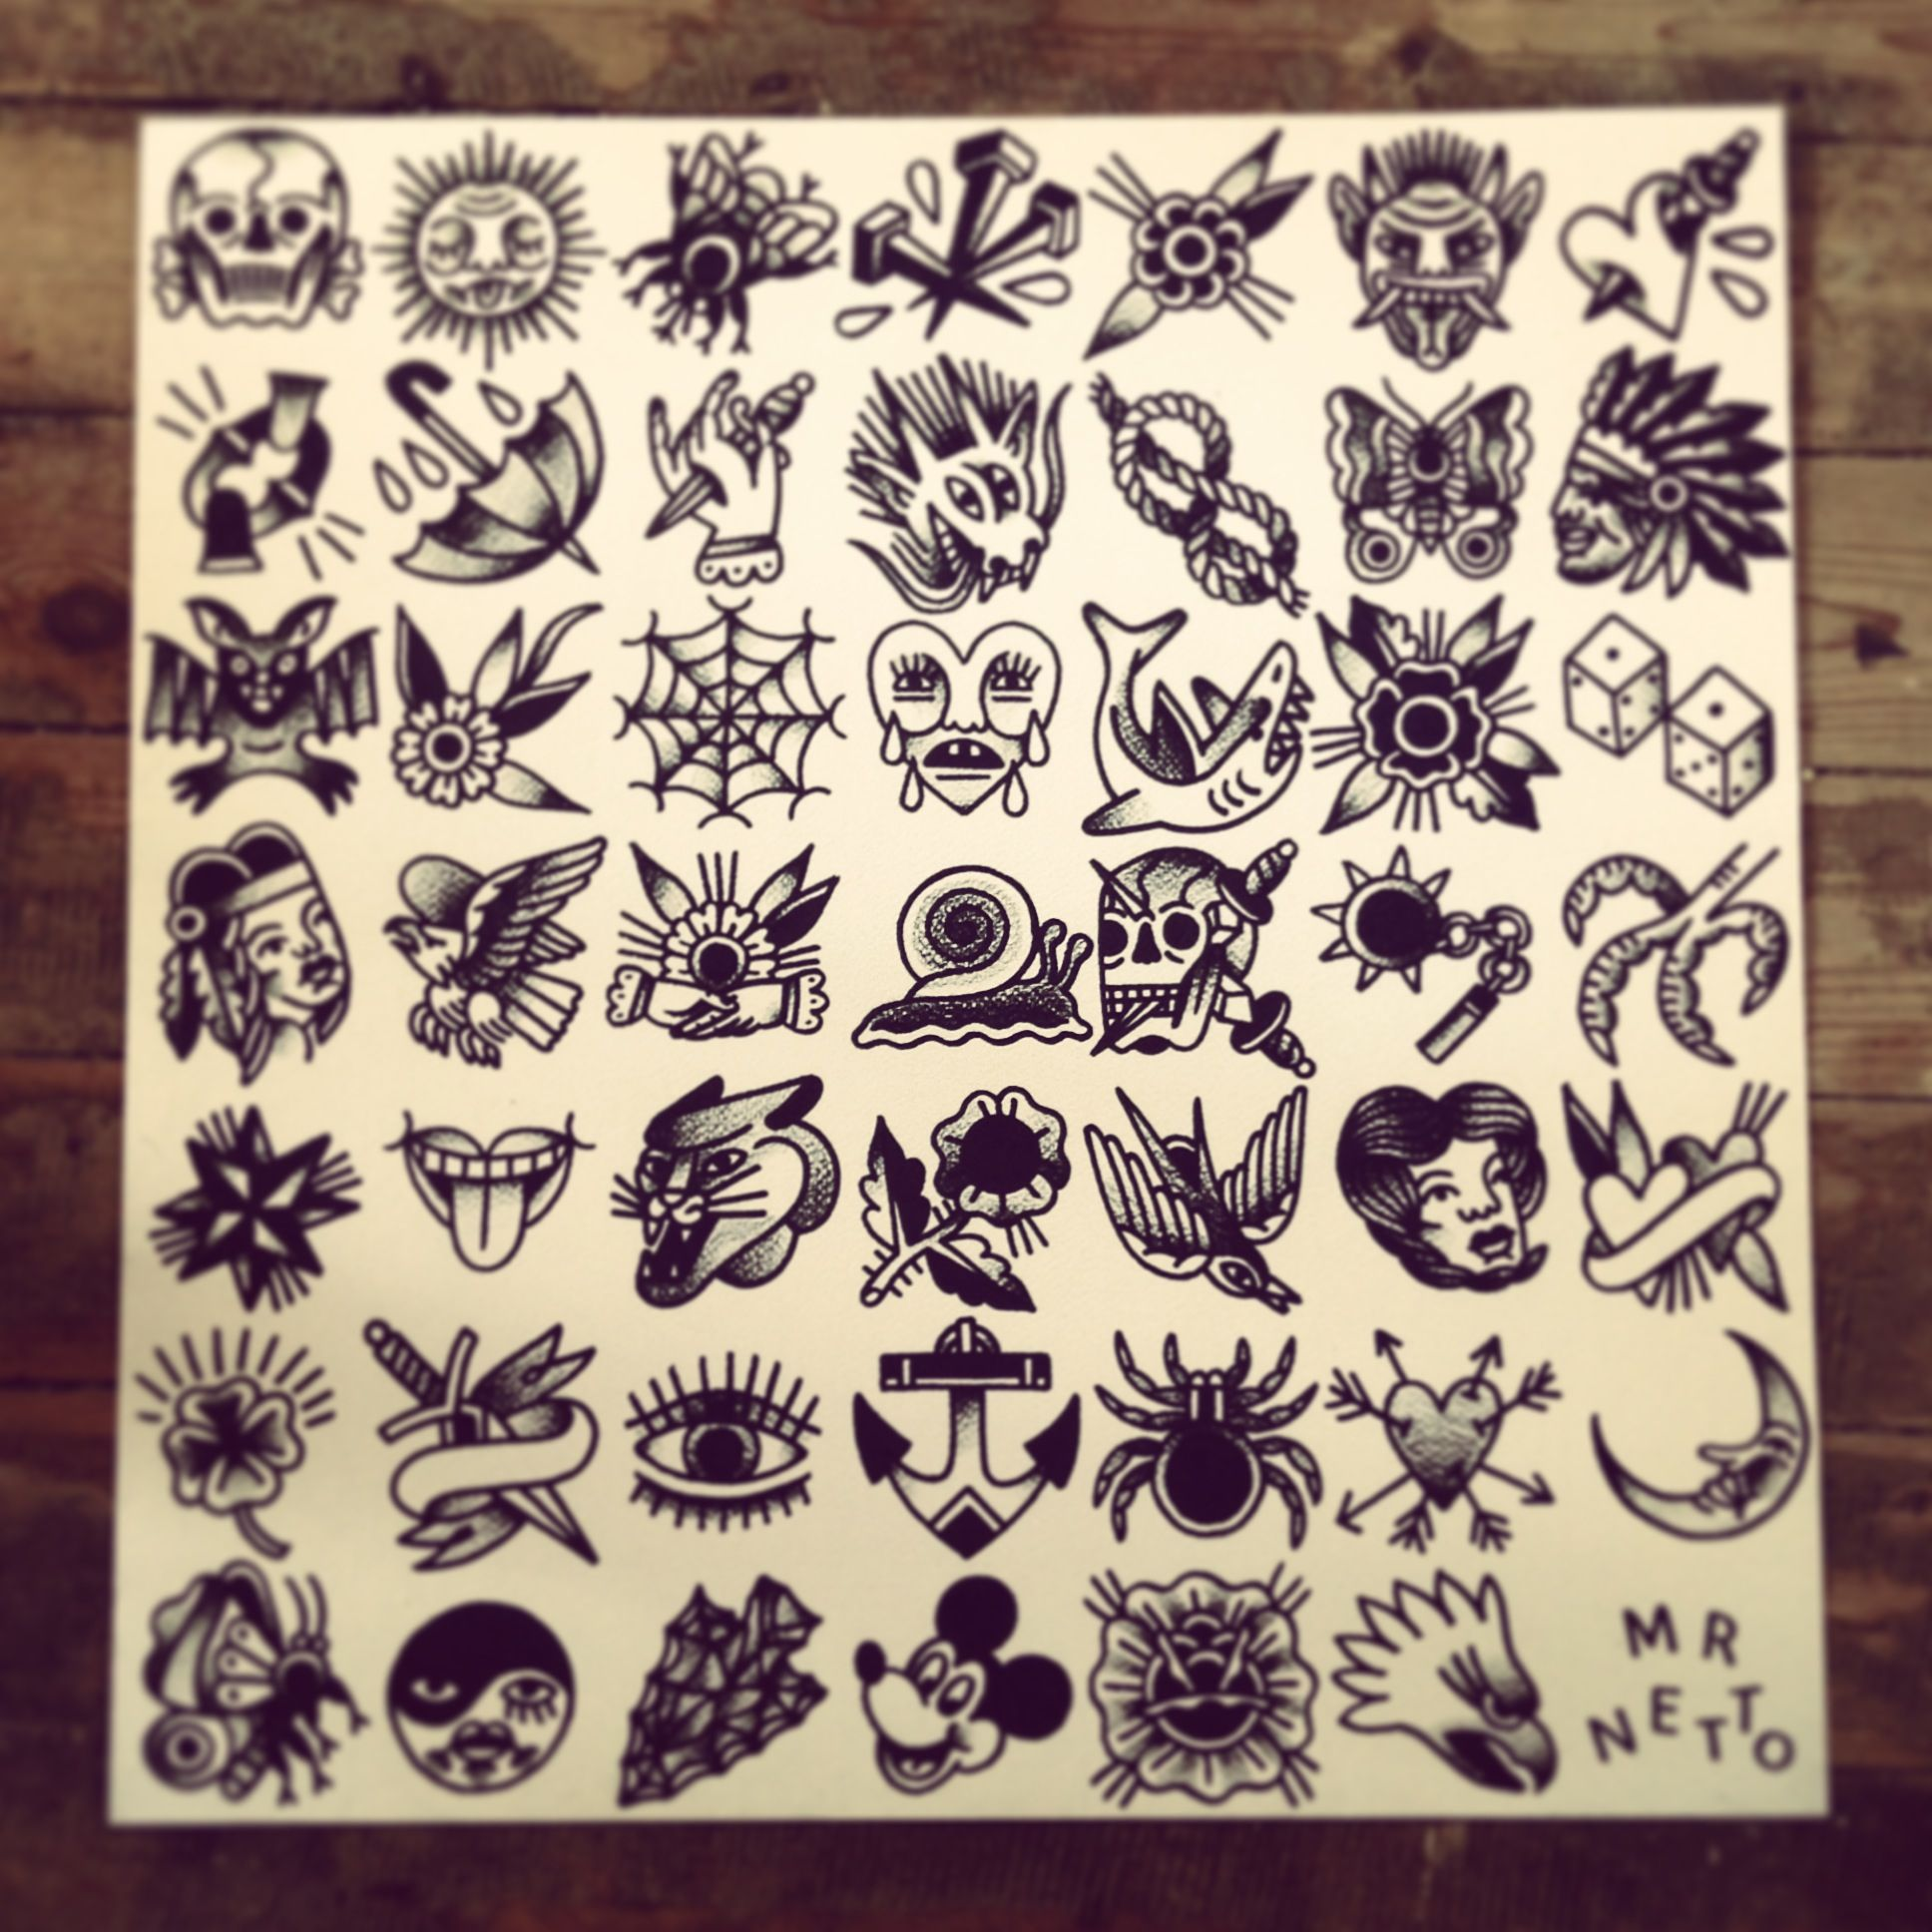 American Traditional Filler: 70 X 70 Cm Tattoo Flash By Mr. Levi Netto, All Designs Are